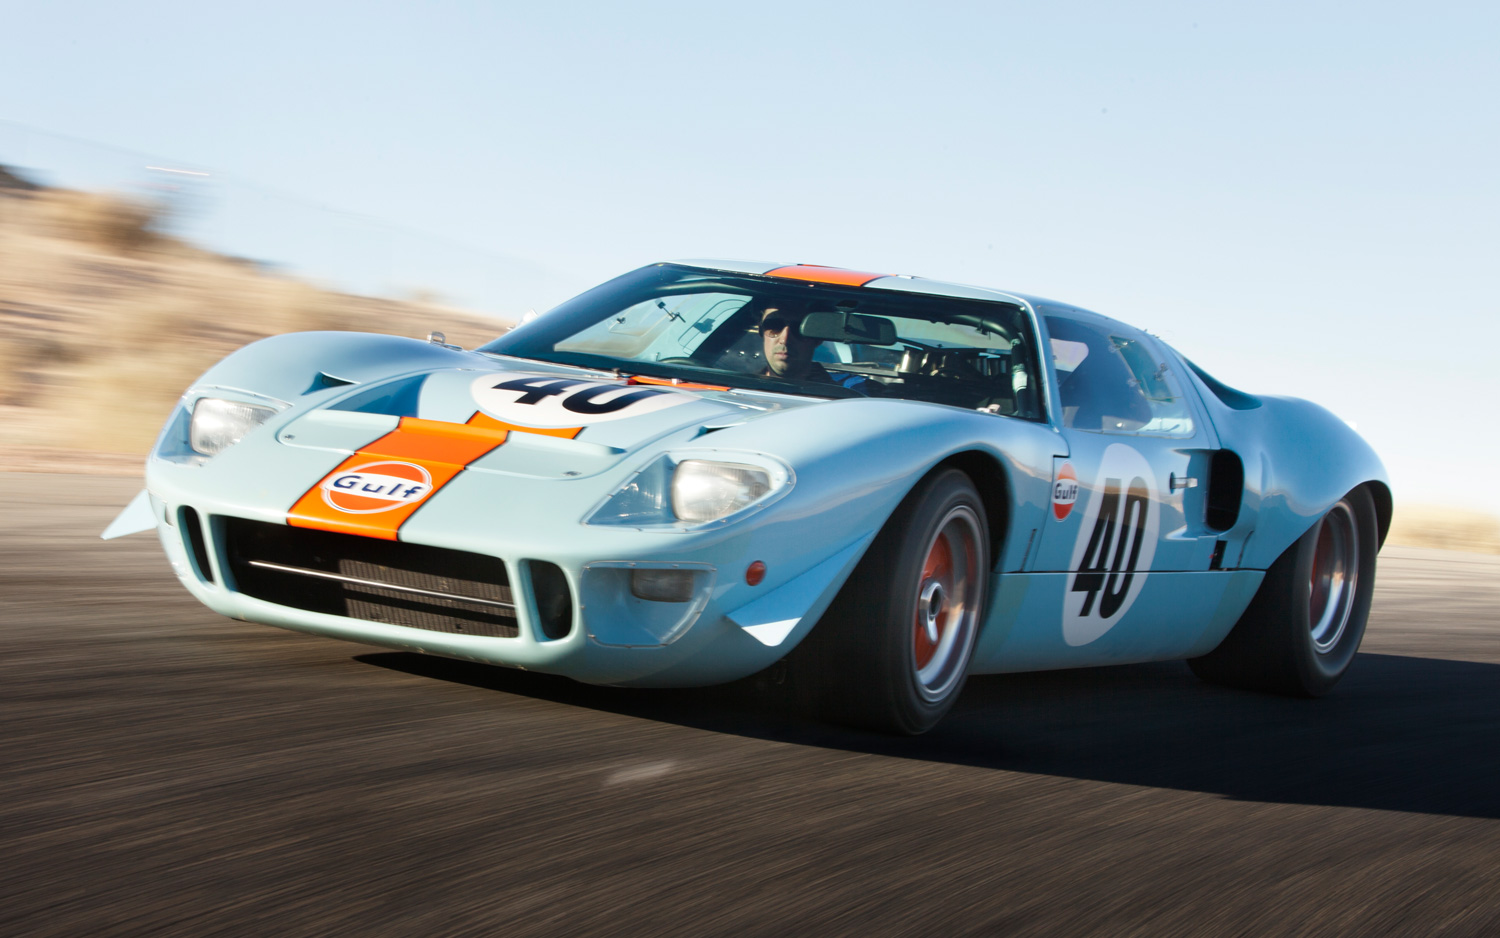 hight resolution of ford gt40 le mans race car sets auction record at 11 million